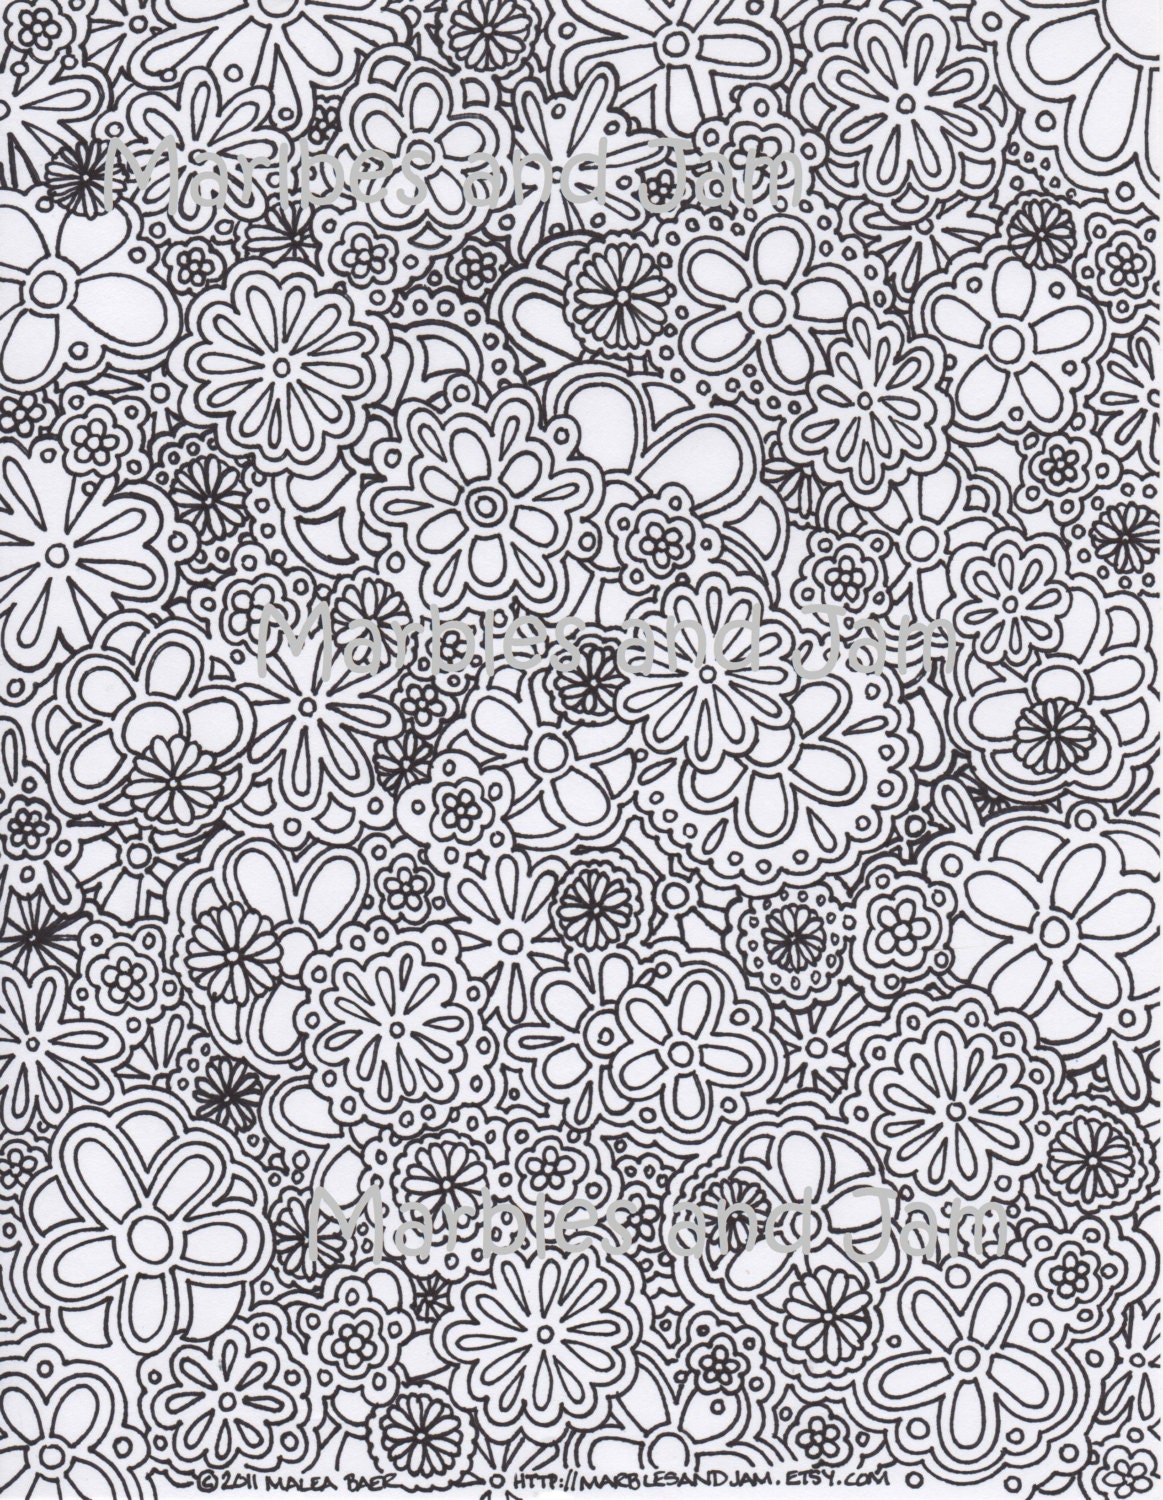 Flowers abstract adult printable coloring page for Super hard abstract coloring pages for adults